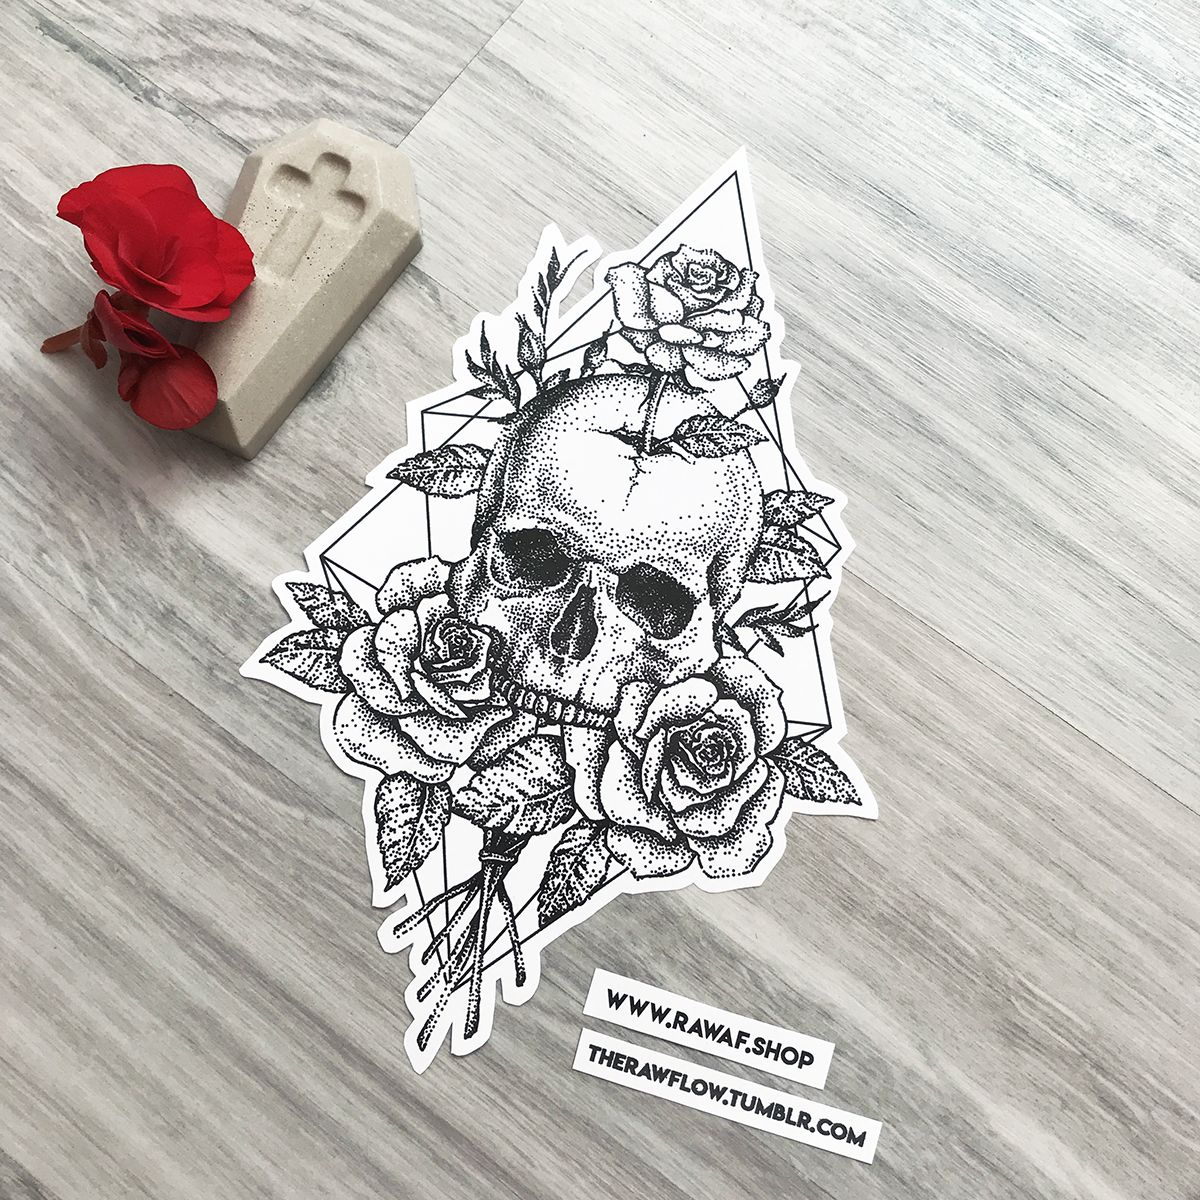 Dotwork Cracked Skull Roses Tattoo Design Download The Full Size Pdf Www Rawaf Shop Tattoo Skull Tattoo Design Skull Rose Tattoos Rose Tattoo Design